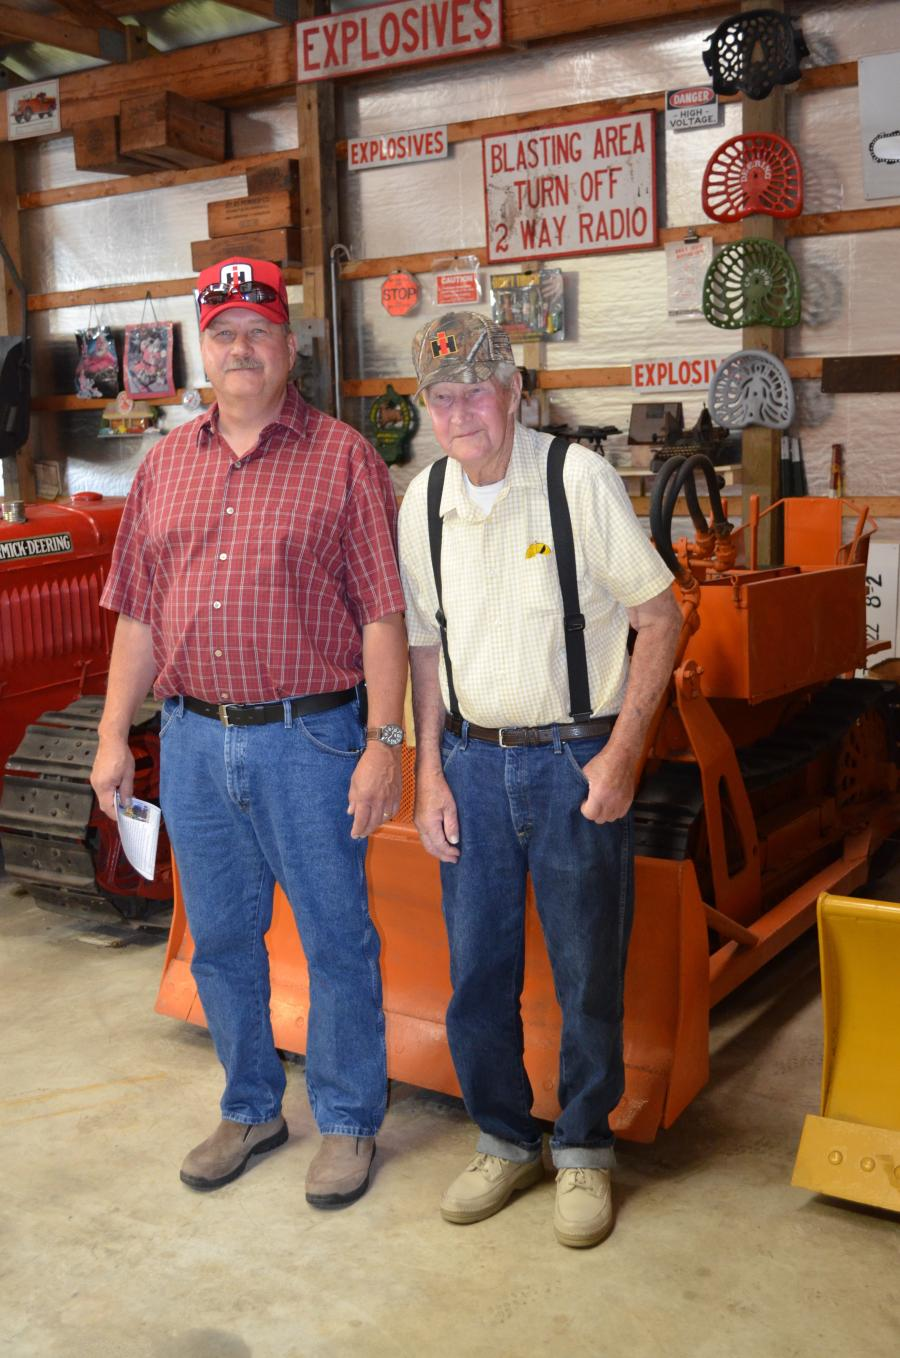 Mike Ritter (L), equipment manager of Melvin L. Joseph Construction Co. Inc. in Georgetown, Del., enjoys the open house with his father, Frank Ritter, a retired farmer.